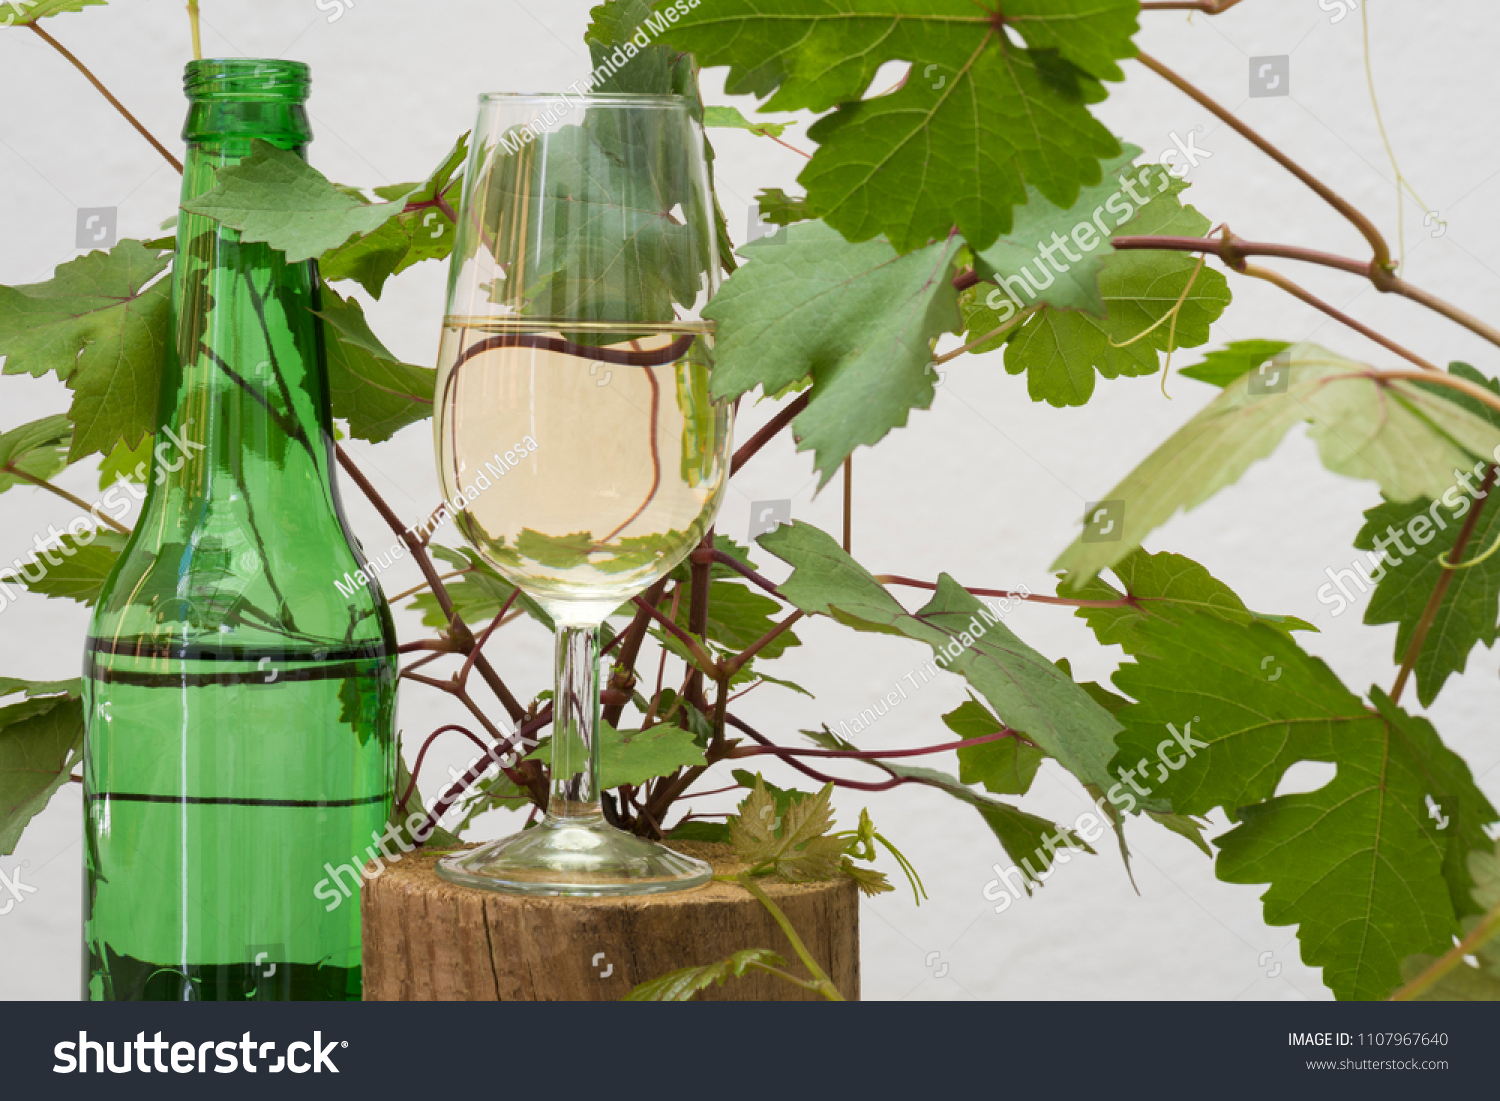 stock-photo-a-glass-of-white-wine-and-a-